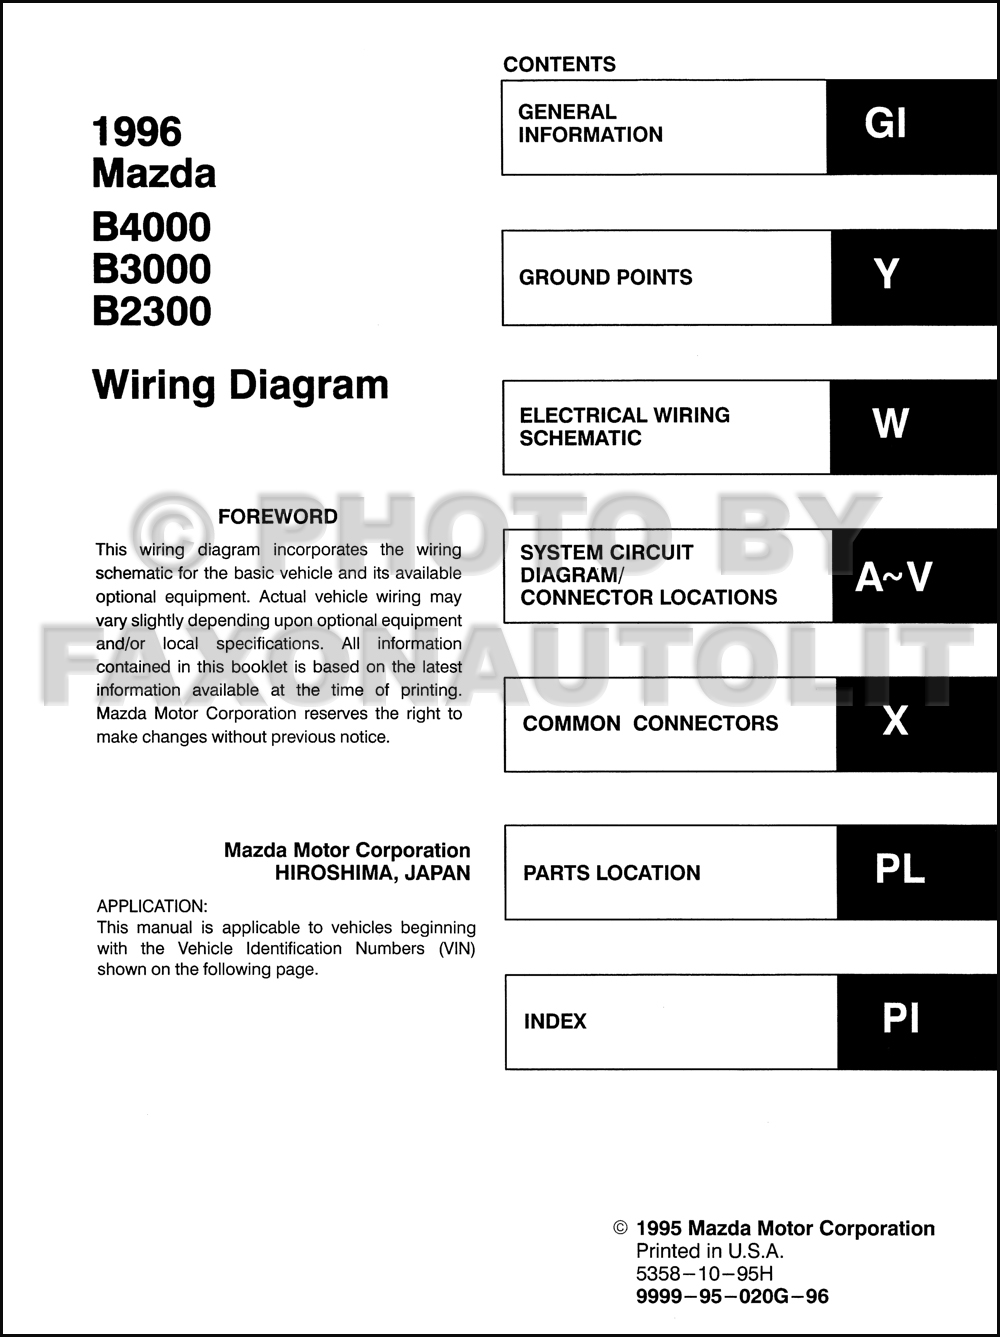 Mazda B3000 Wiring Schematic List Of Circuit Diagram 01 Fuse Box 1996 B4000 B2300 Pickup Truck Manual Original Rh Faxonautoliterature Com 2003